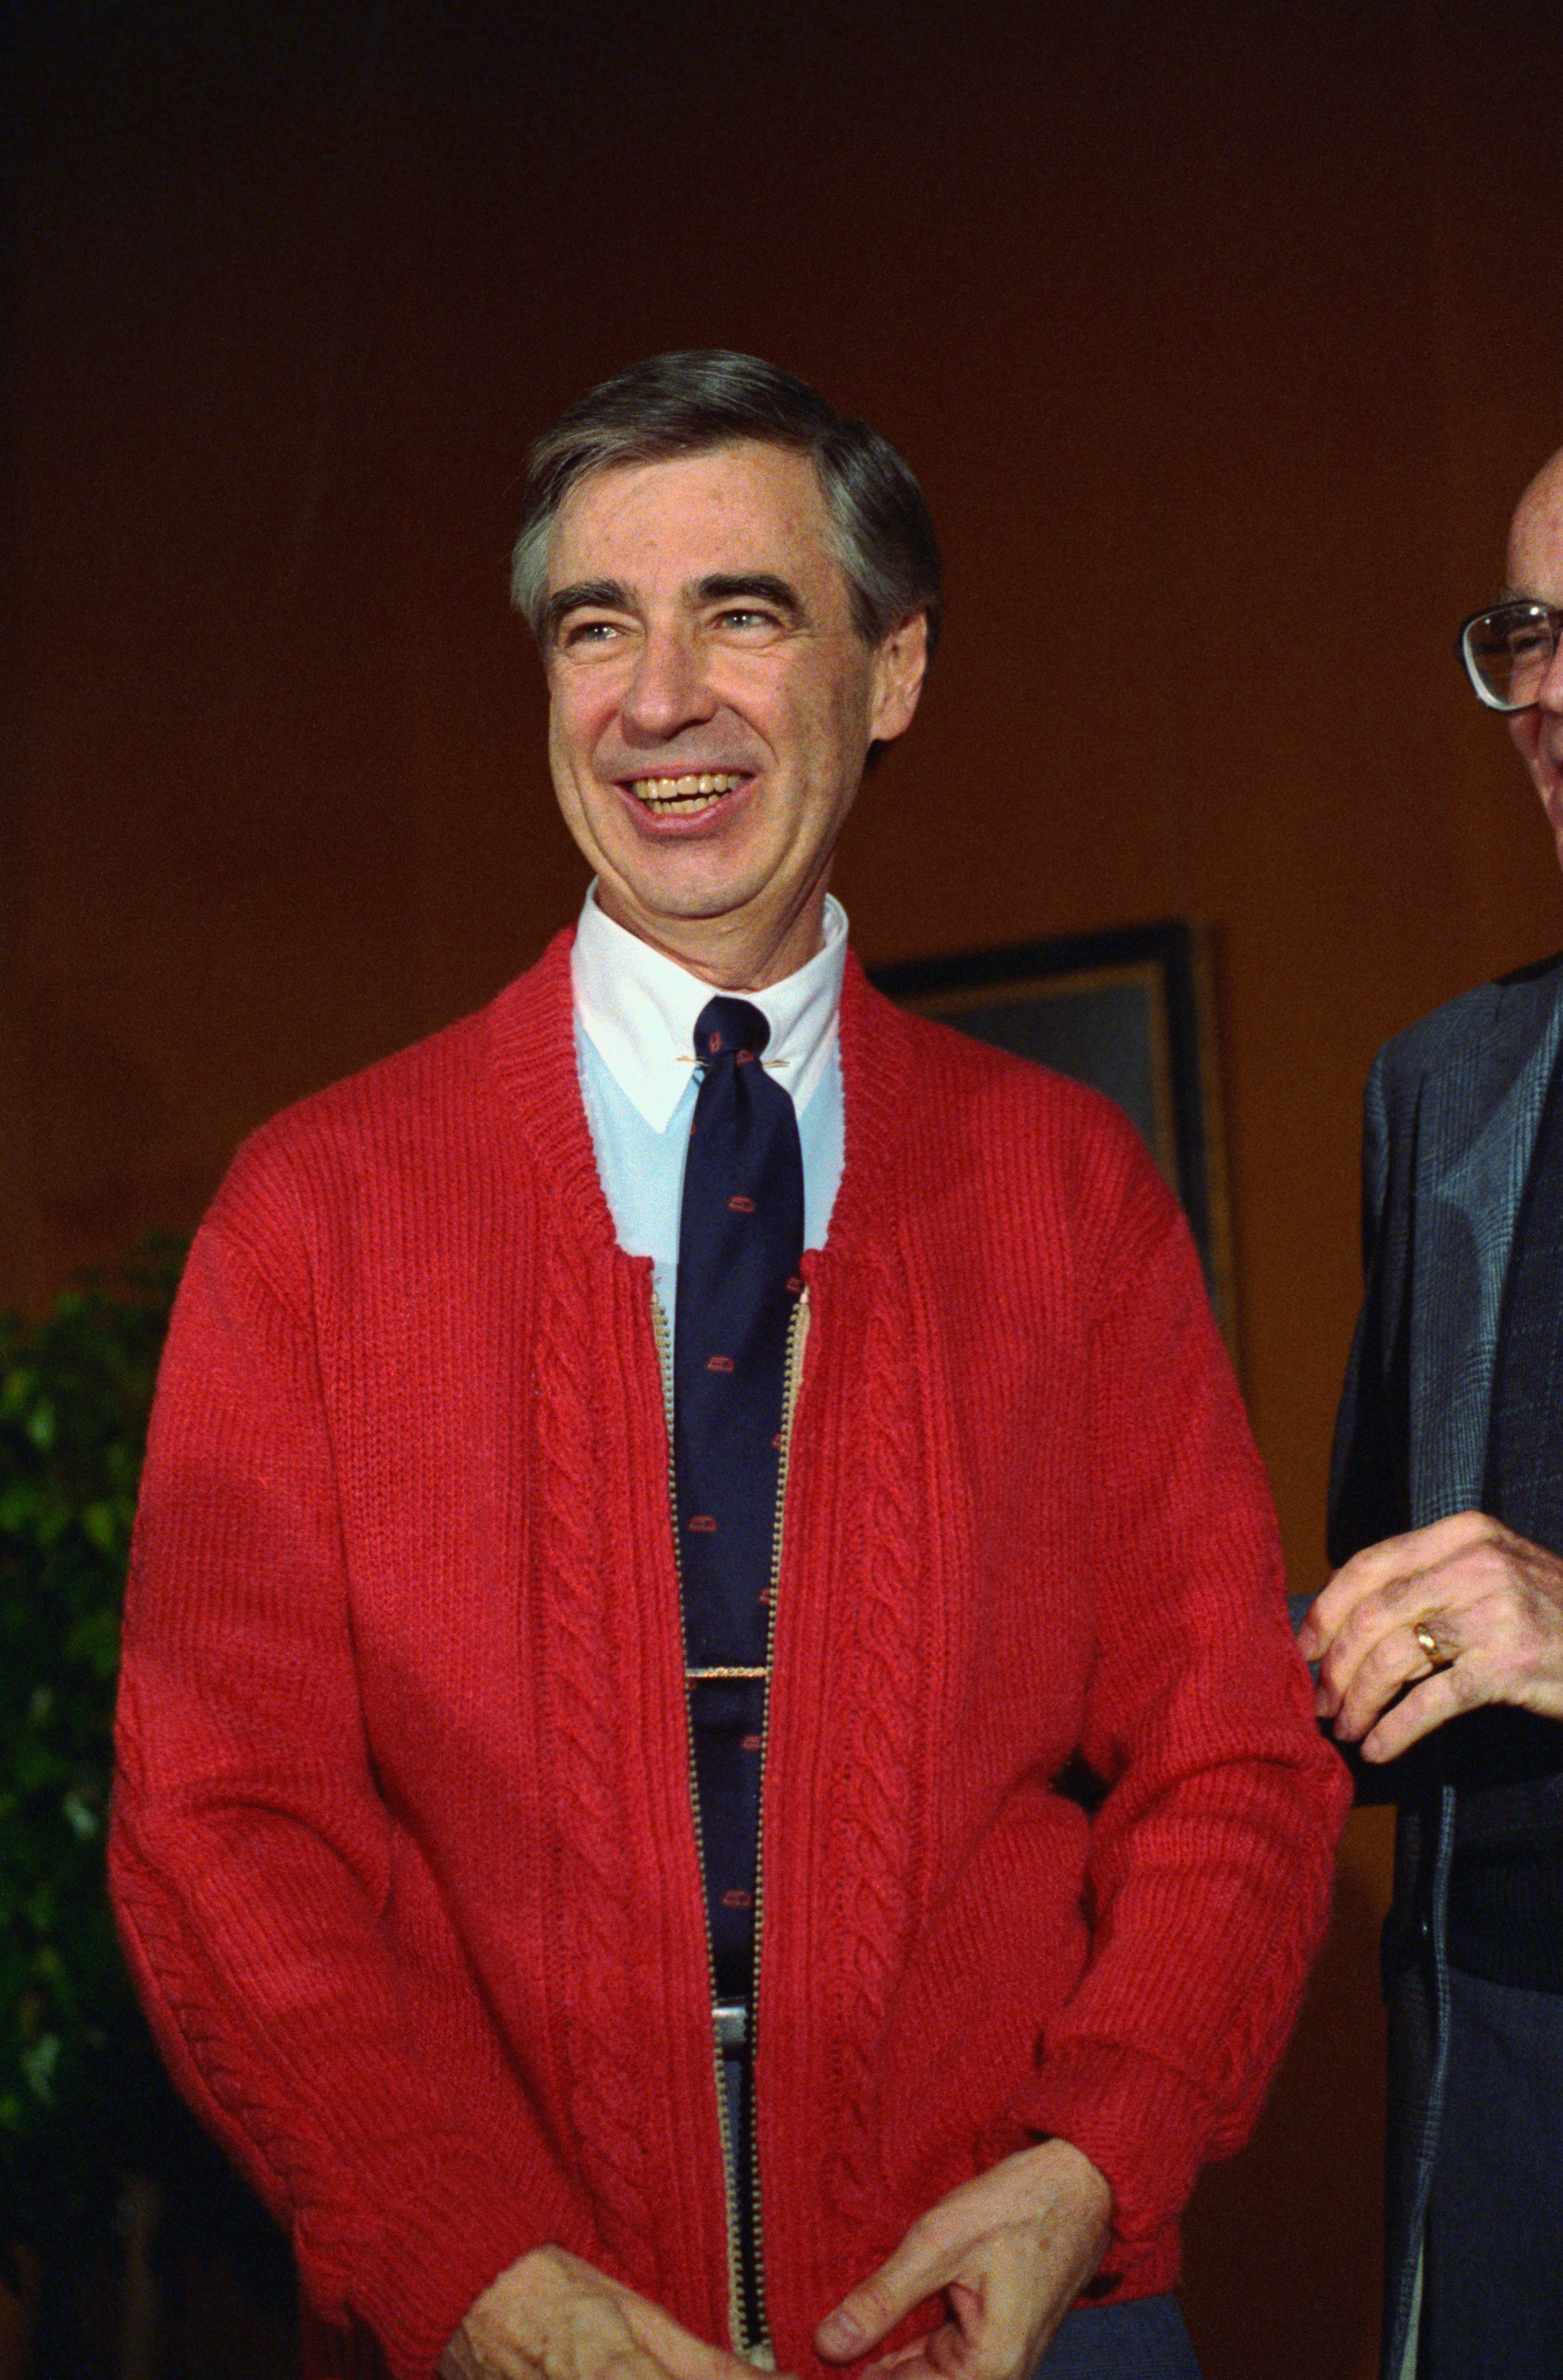 Fred Rogers Donating His Red Sweater